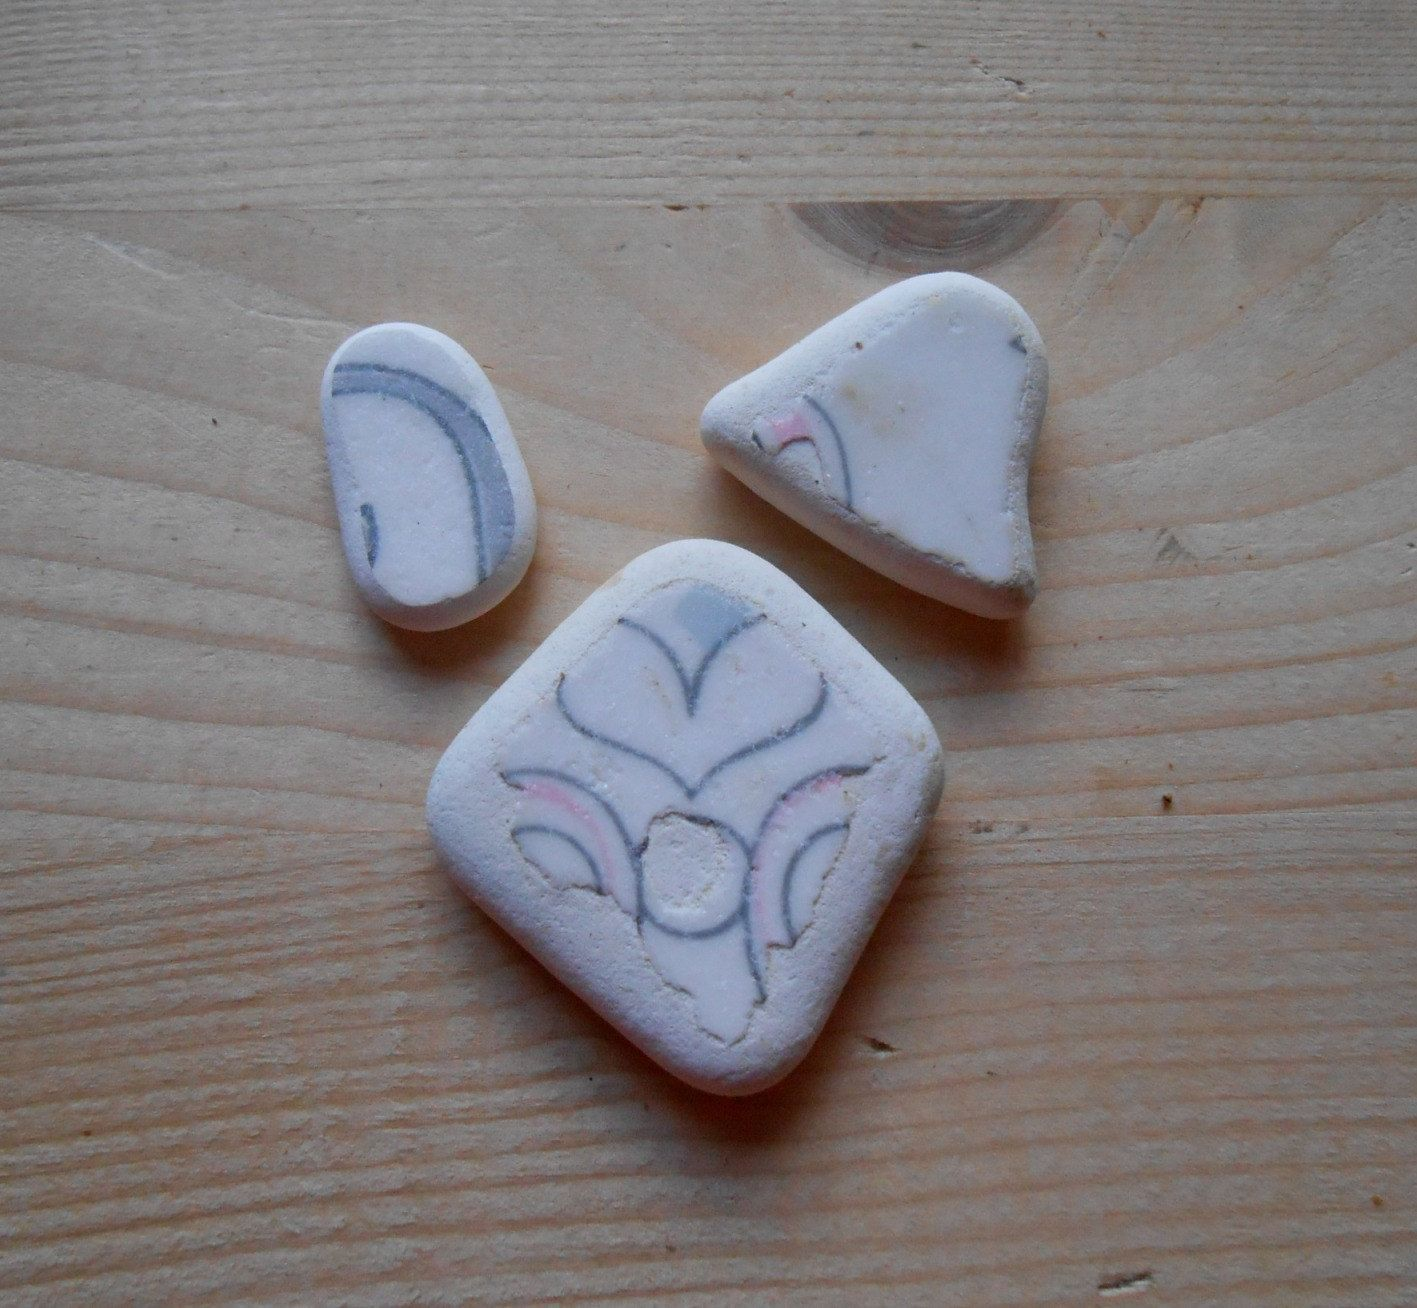 Sea pottery, white shards sea pottery, grey, pink, heart, geometric pattern , jewelry supplies, collectible 3 pieces lotto173 di lepropostedimari su Etsy